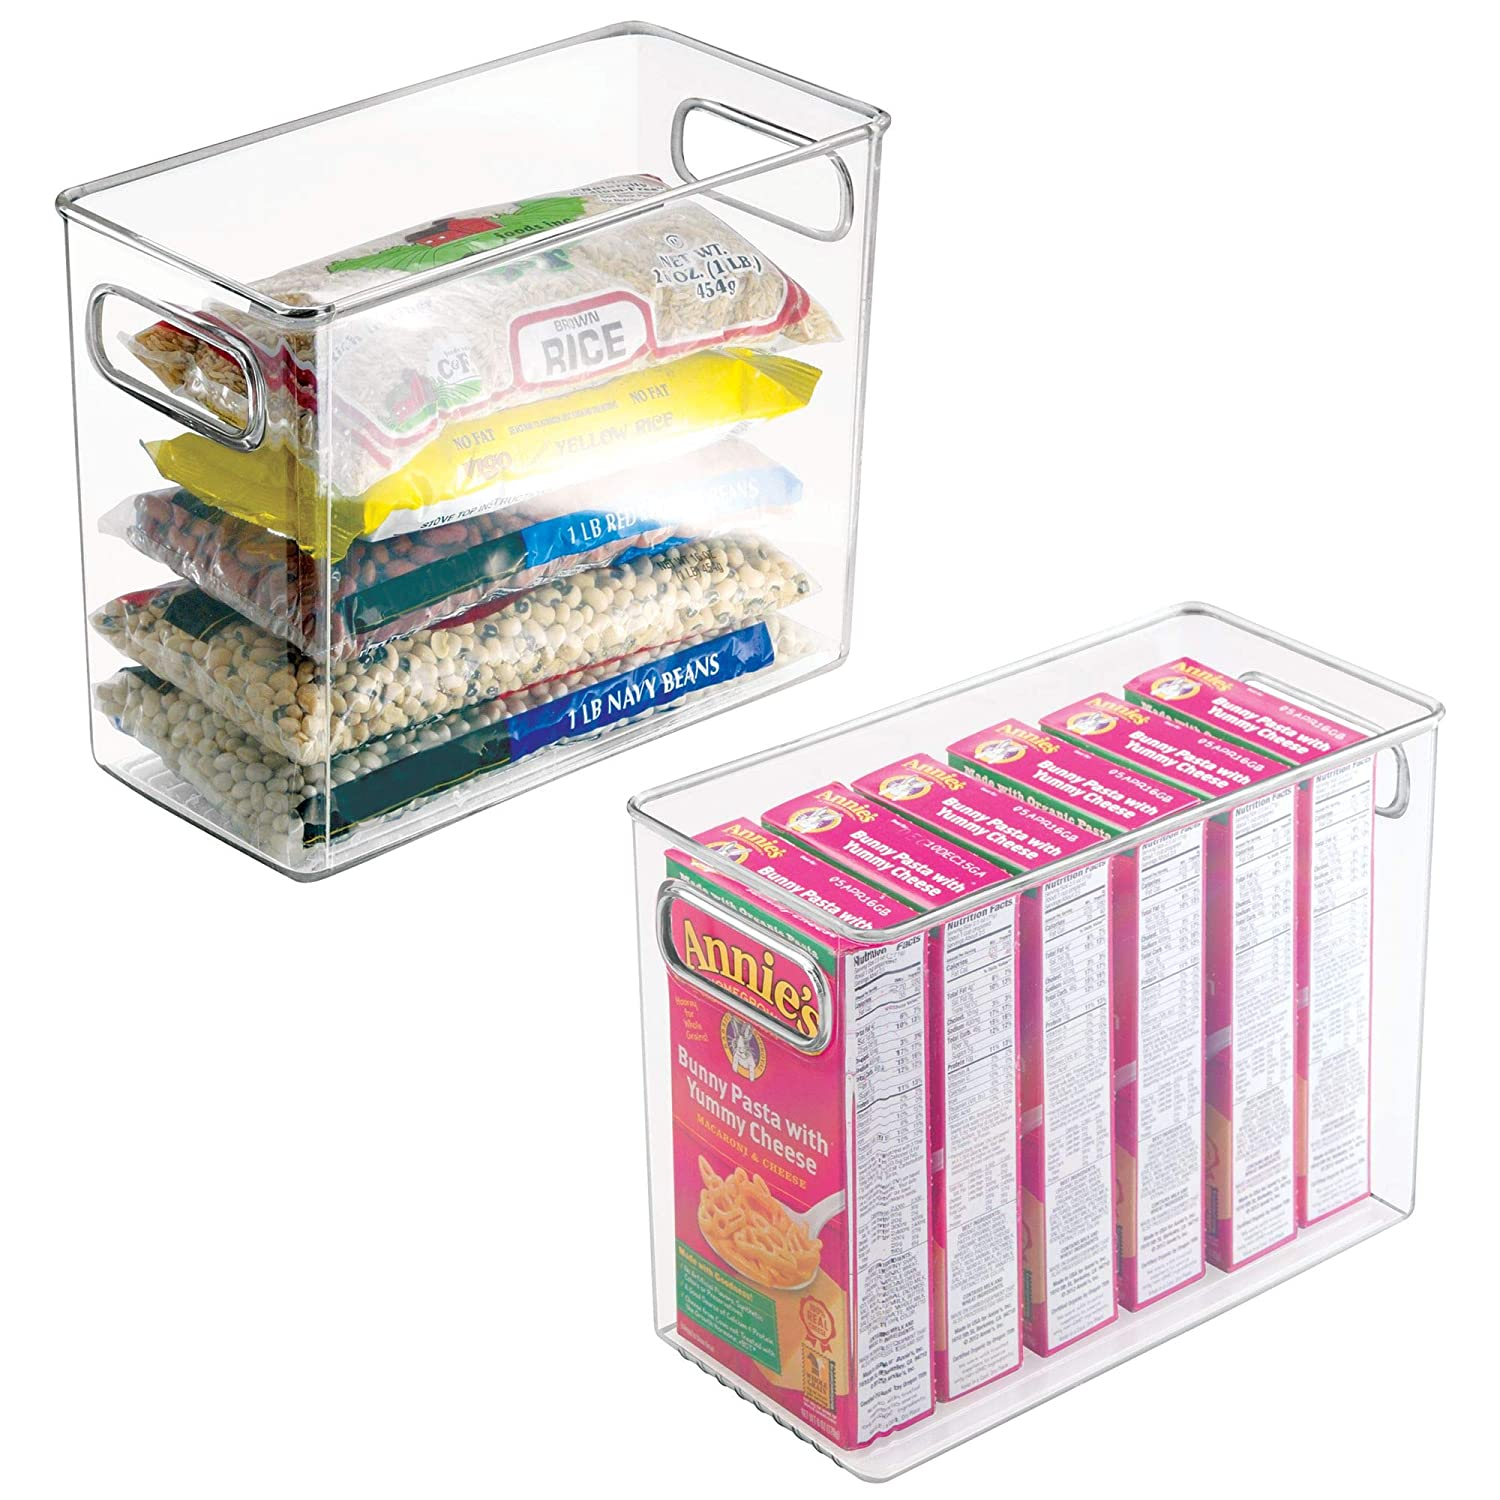 "Plastic Kitchen Pantry Cabinet, Refrigerator or Freezer Food Storage Bins with Handles - Organizer for Fruit, Yogurt, Snacks, Pasta - Food Safe, BPA Free, 2 Pack, 10"" Long - Clear"